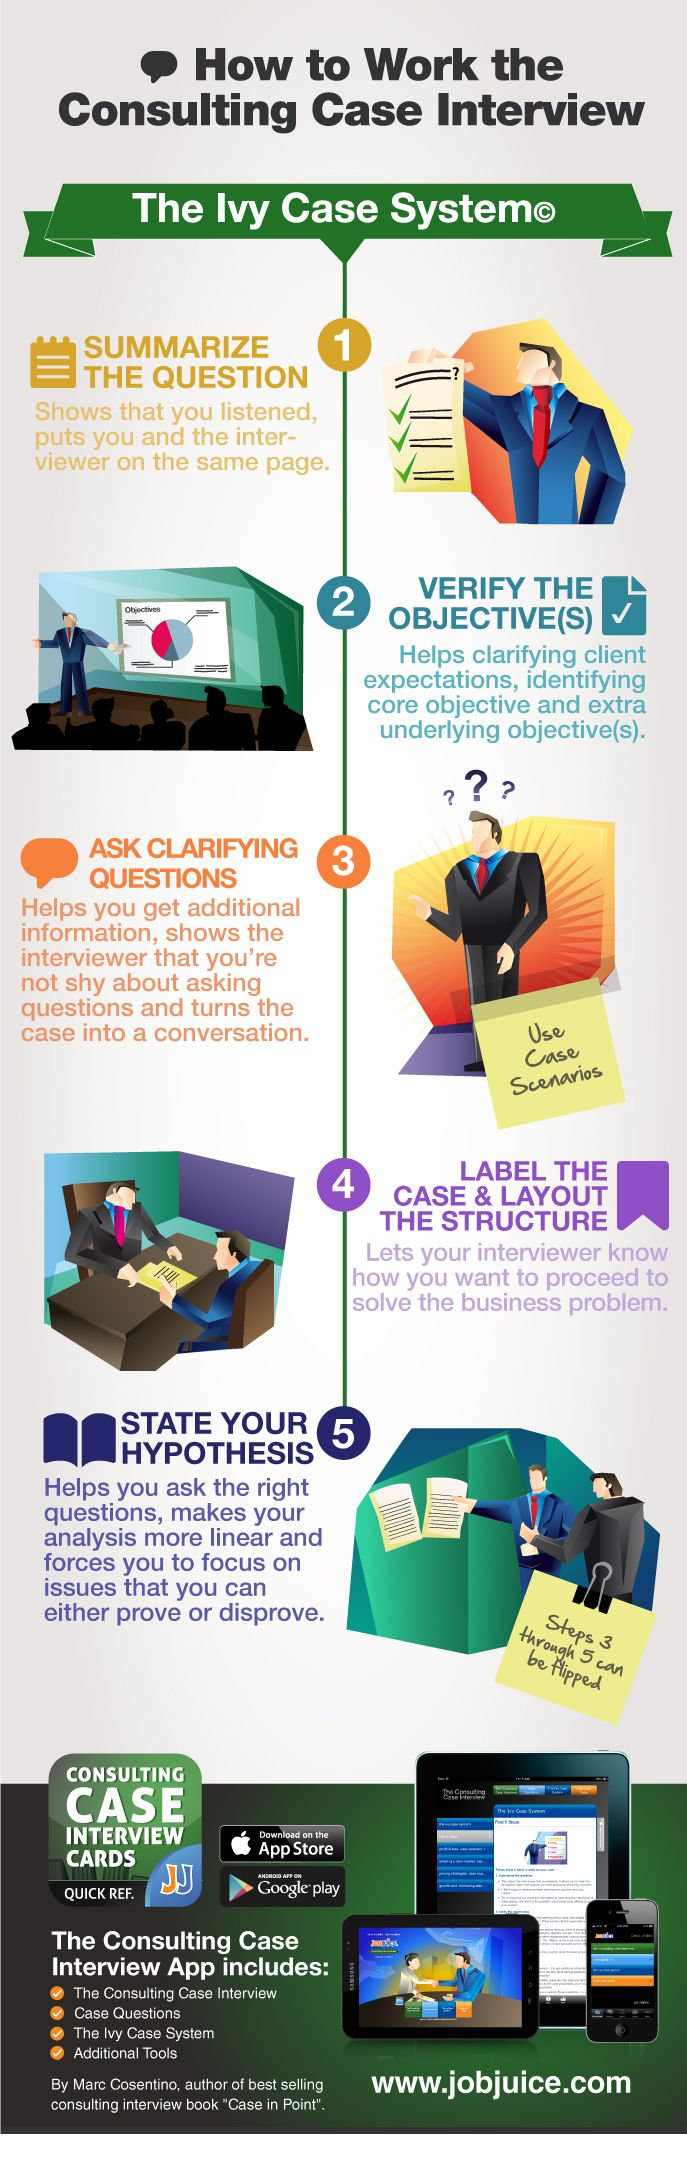 Want to ace your Consulting interview? Learn more about a proven method that can help you crack a case in 5 simple steps! [INFOGRAPHIC]  Click here: http://www.jobjuice.com/blog/bid/145527/Consulting-Job-Interviews-How-To-Work-A-Case    Learn more about Jobjuice Consulting Case Interview app here:  http://www.jobjuice.com/consulting-case-interview/